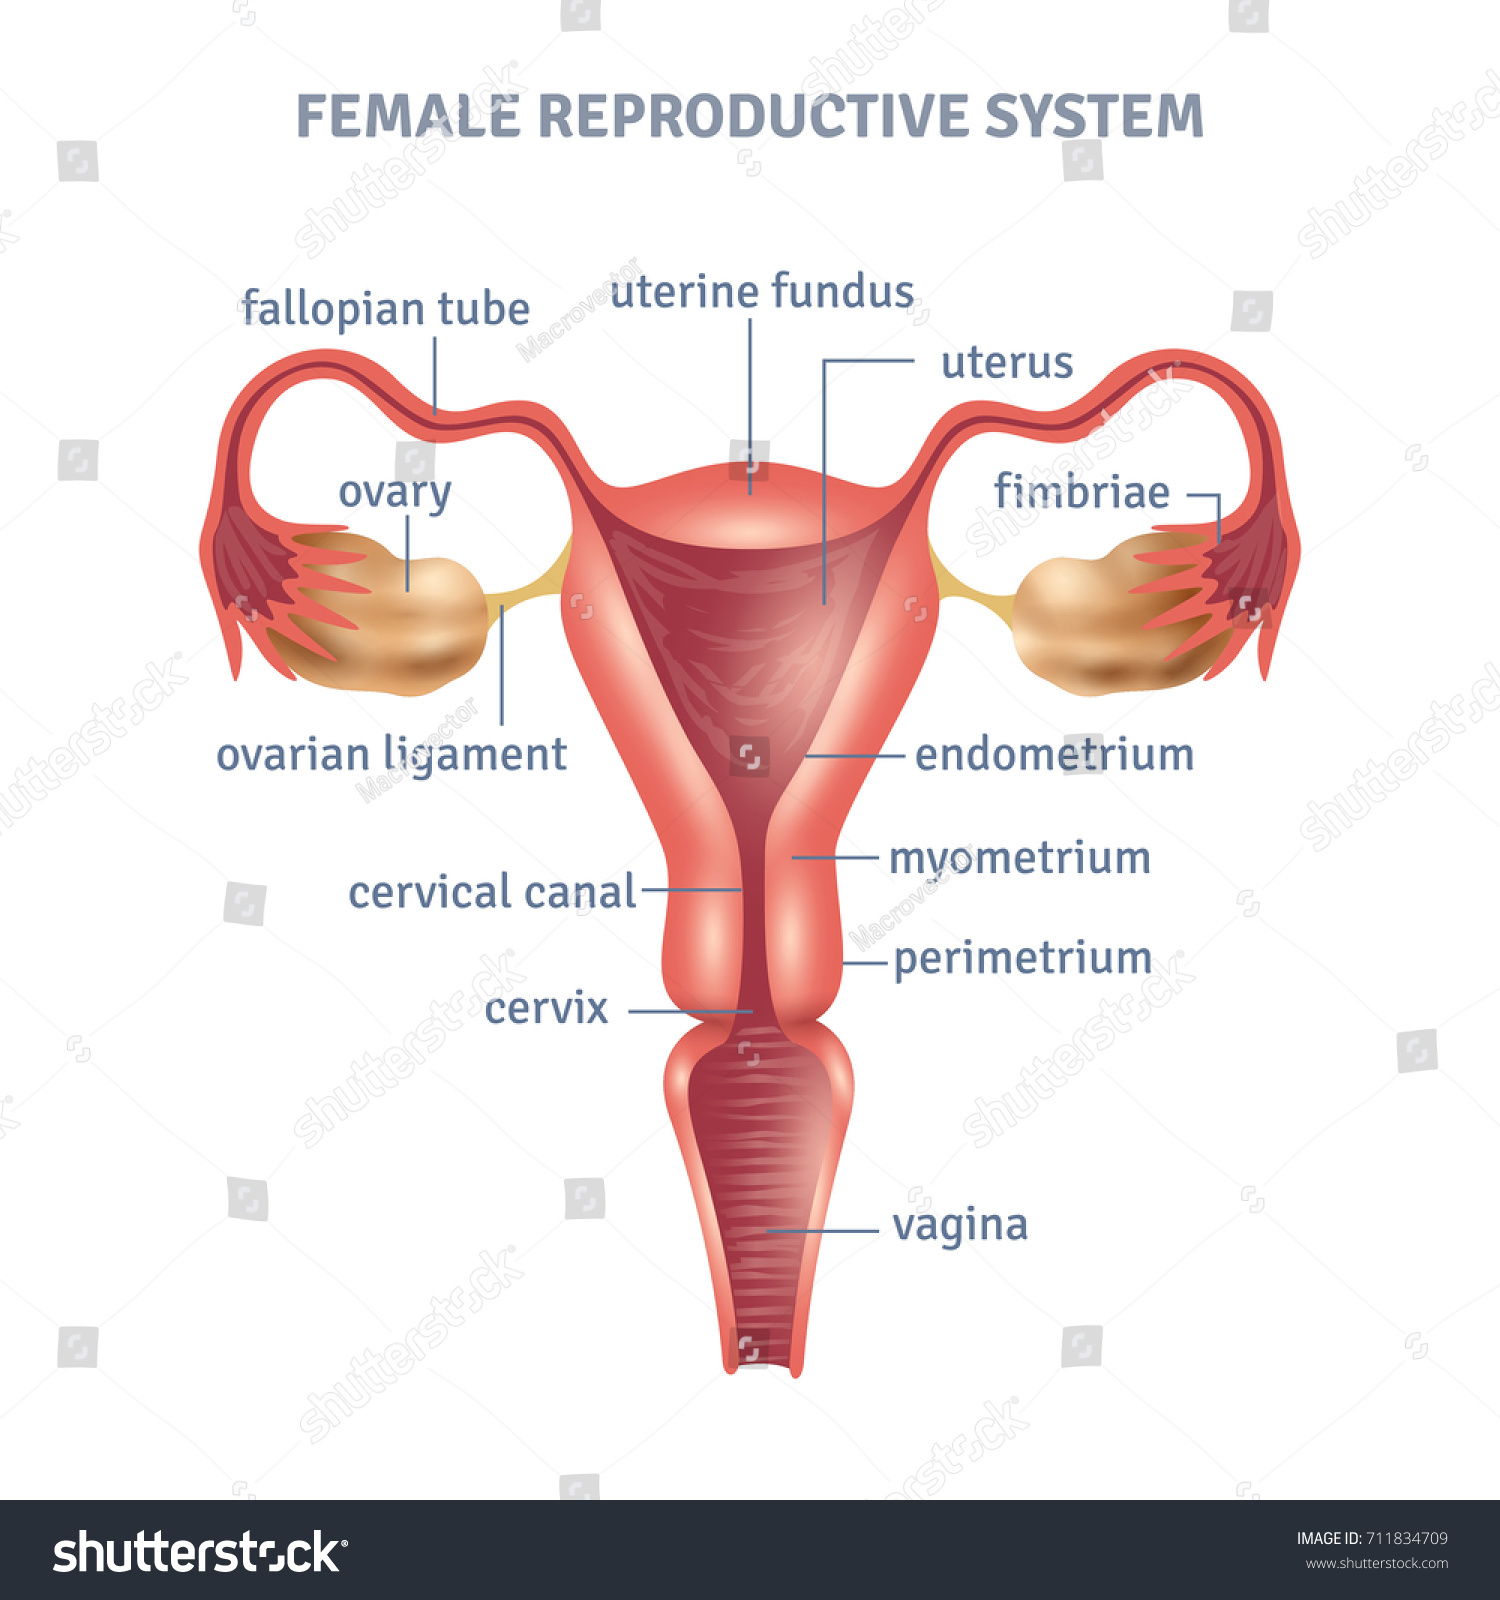 Uterus Medical Poster Female Reproductive System Stockillustration